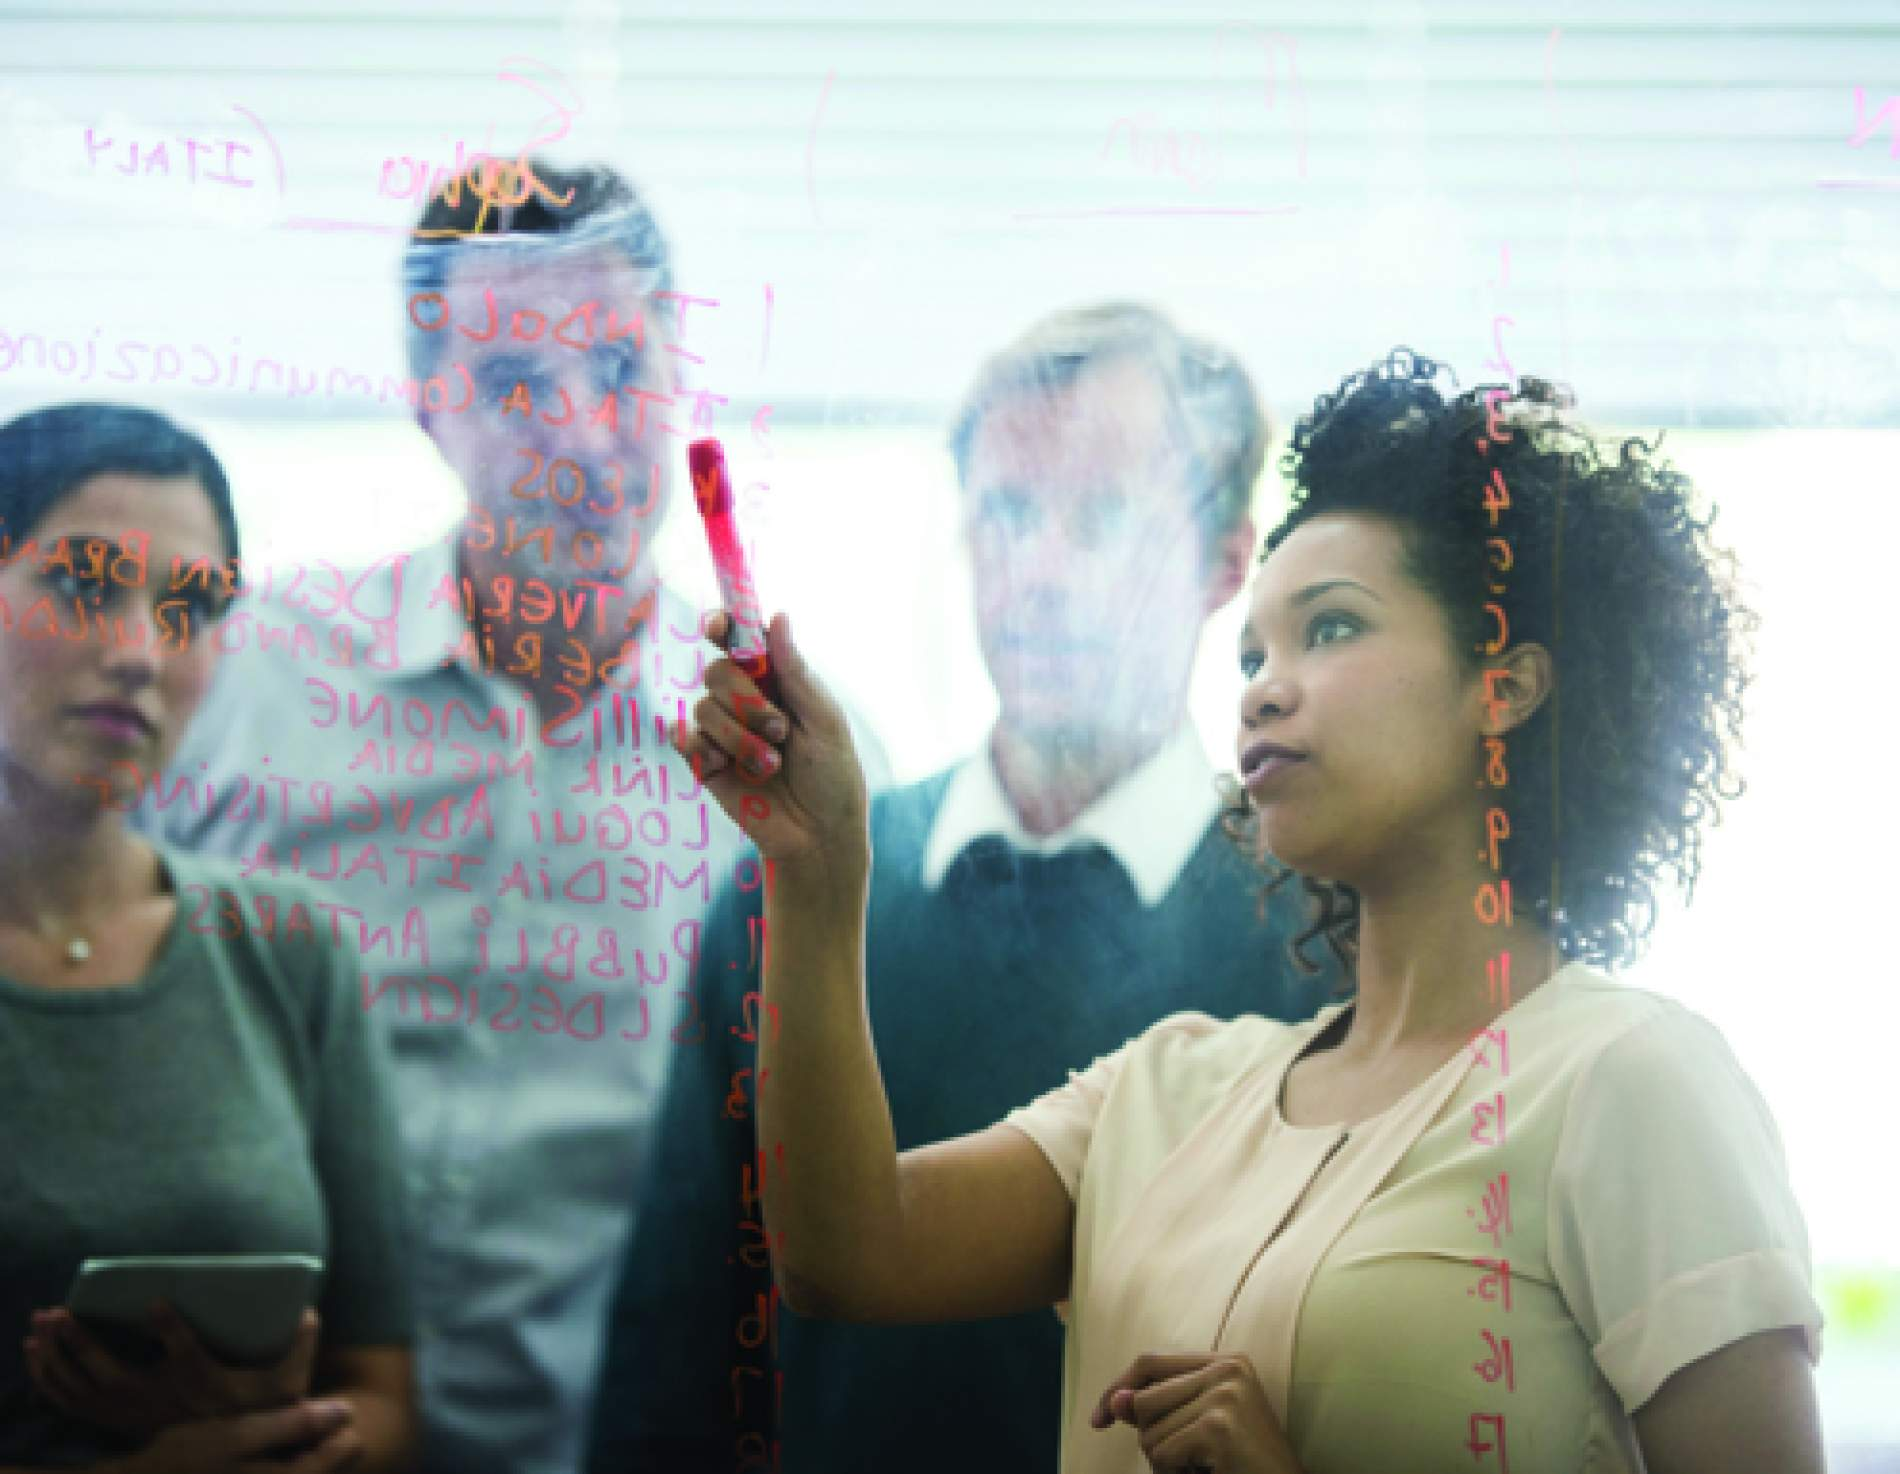 People looking at data analytics on a glass